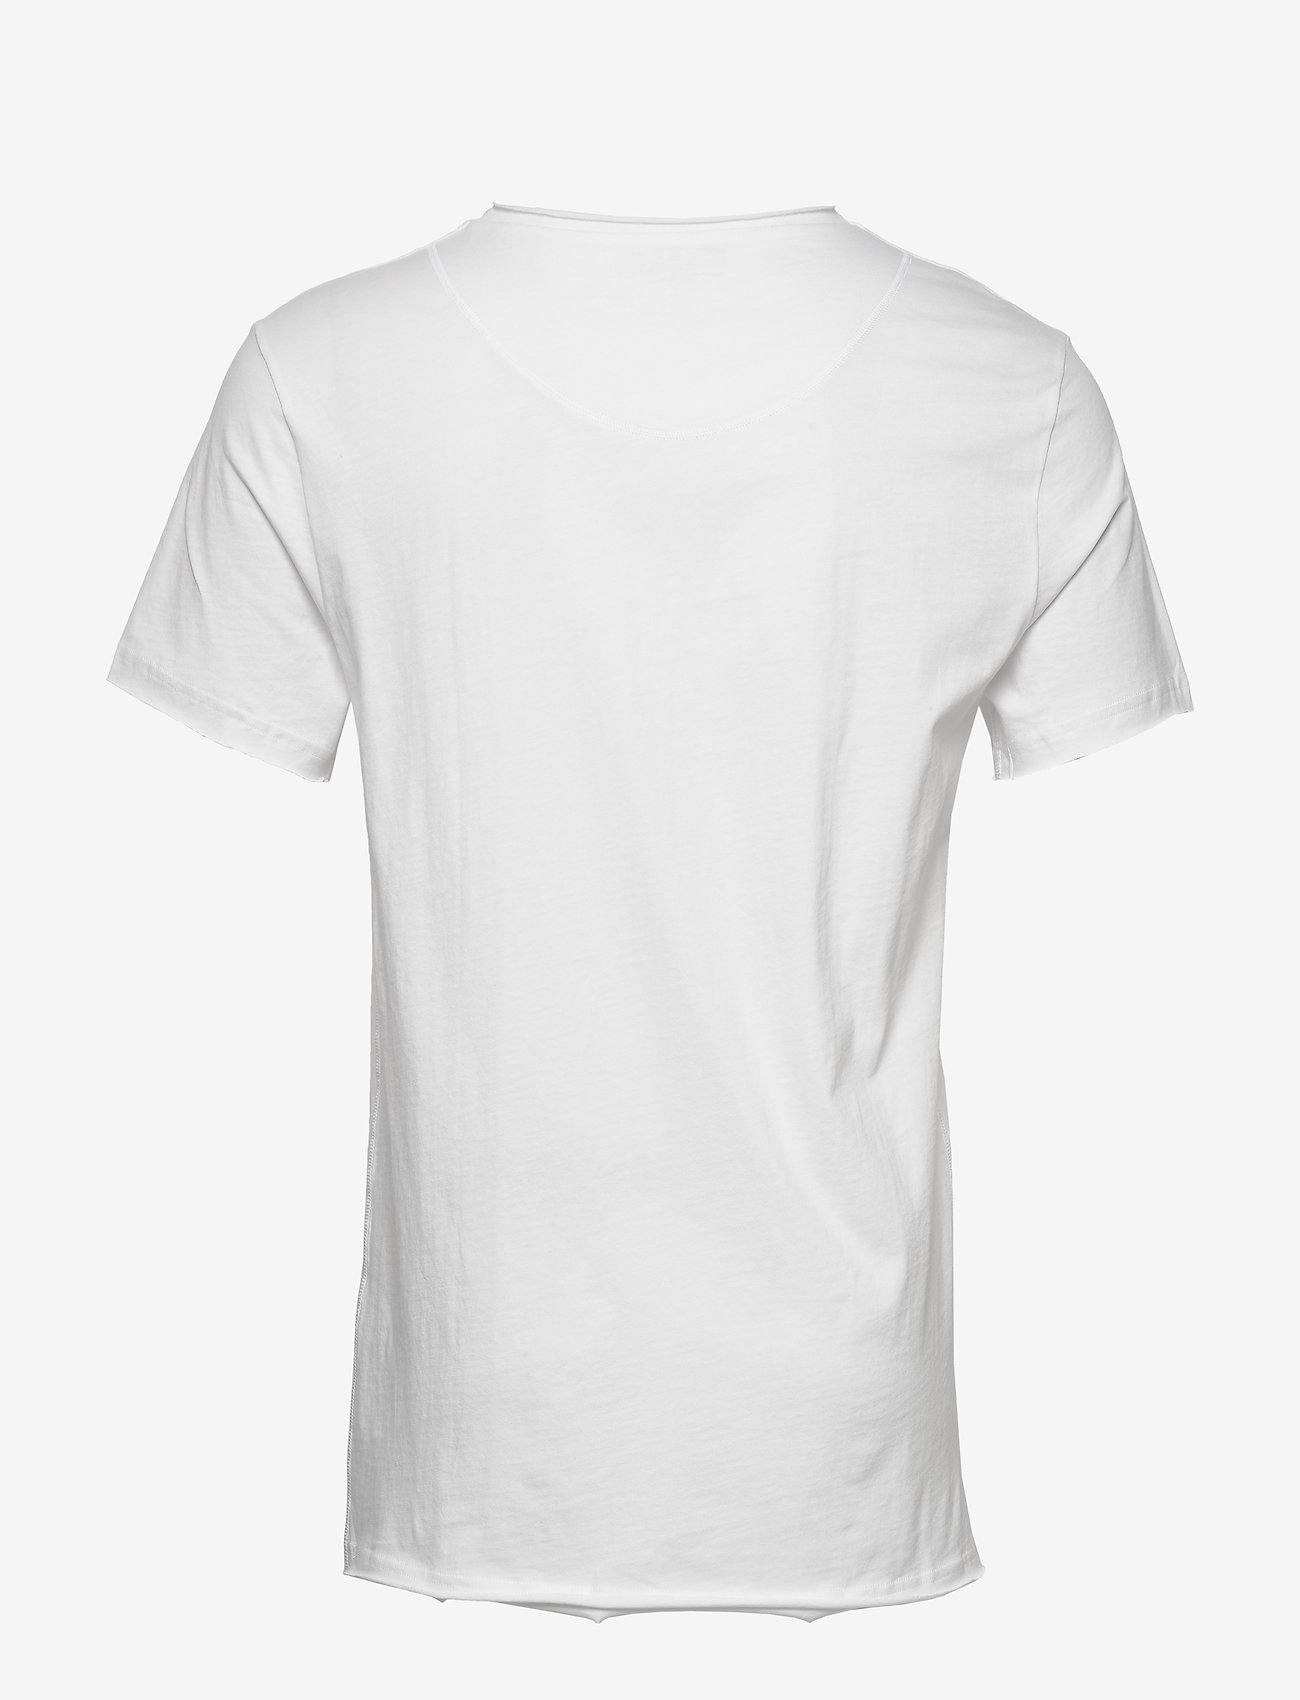 Bread & Boxers - Crew-Neck Relaxed T-shirt - basic t-shirts - white - 1